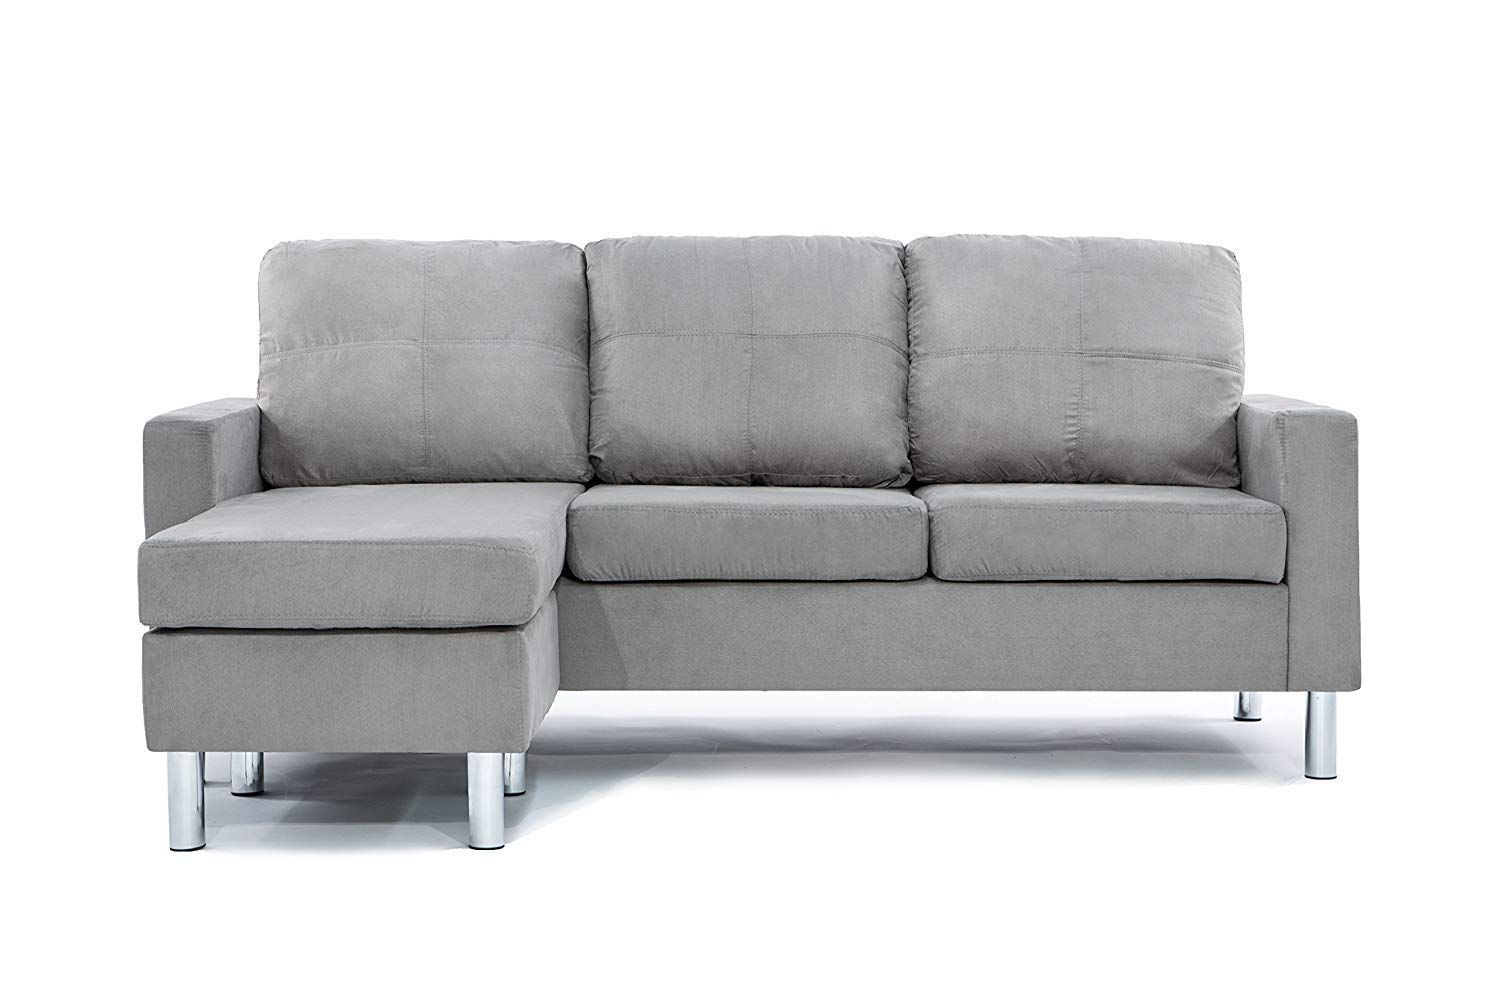 5 Best Sectional Sofa For Family Of 2020 In Depth Review Sofas For Small Spaces Small Sectional Sofa Sectional Sofa